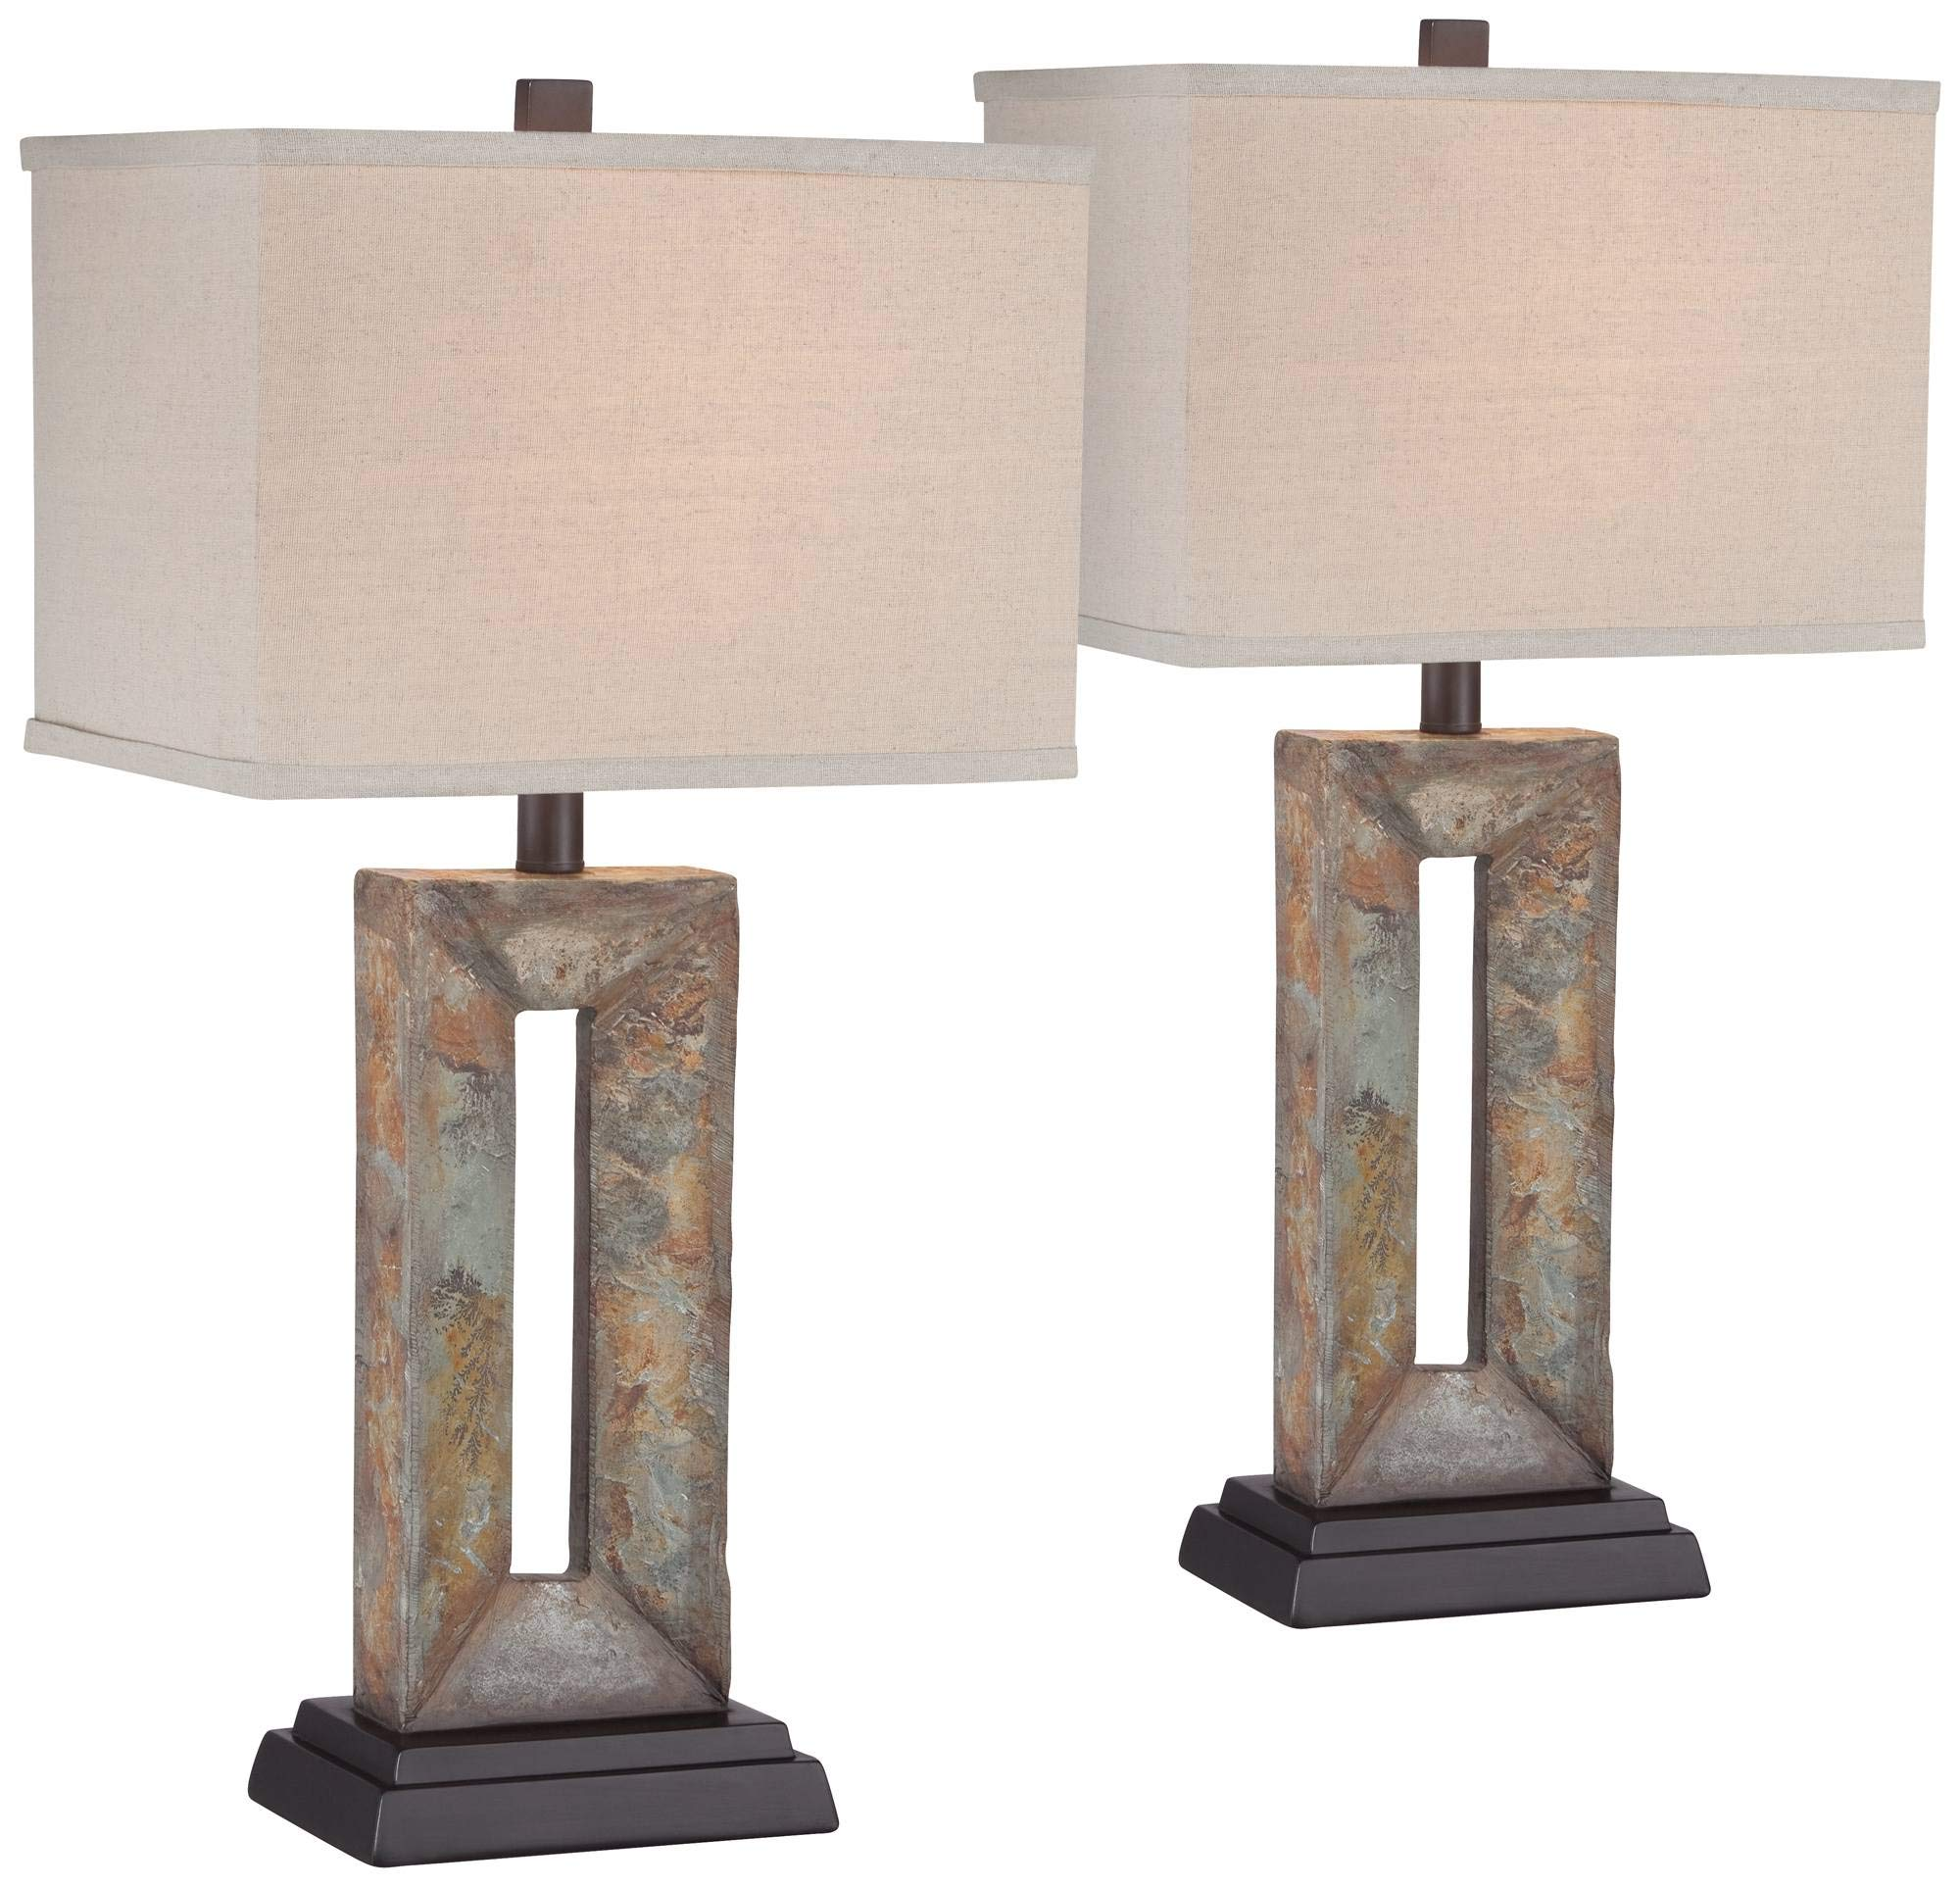 Tahoe Rustic Table Lamps Set of 2 Natural Stale Open Rectangular Box Shade for Living Room Family Bedroom Bedside - Franklin Iron Works